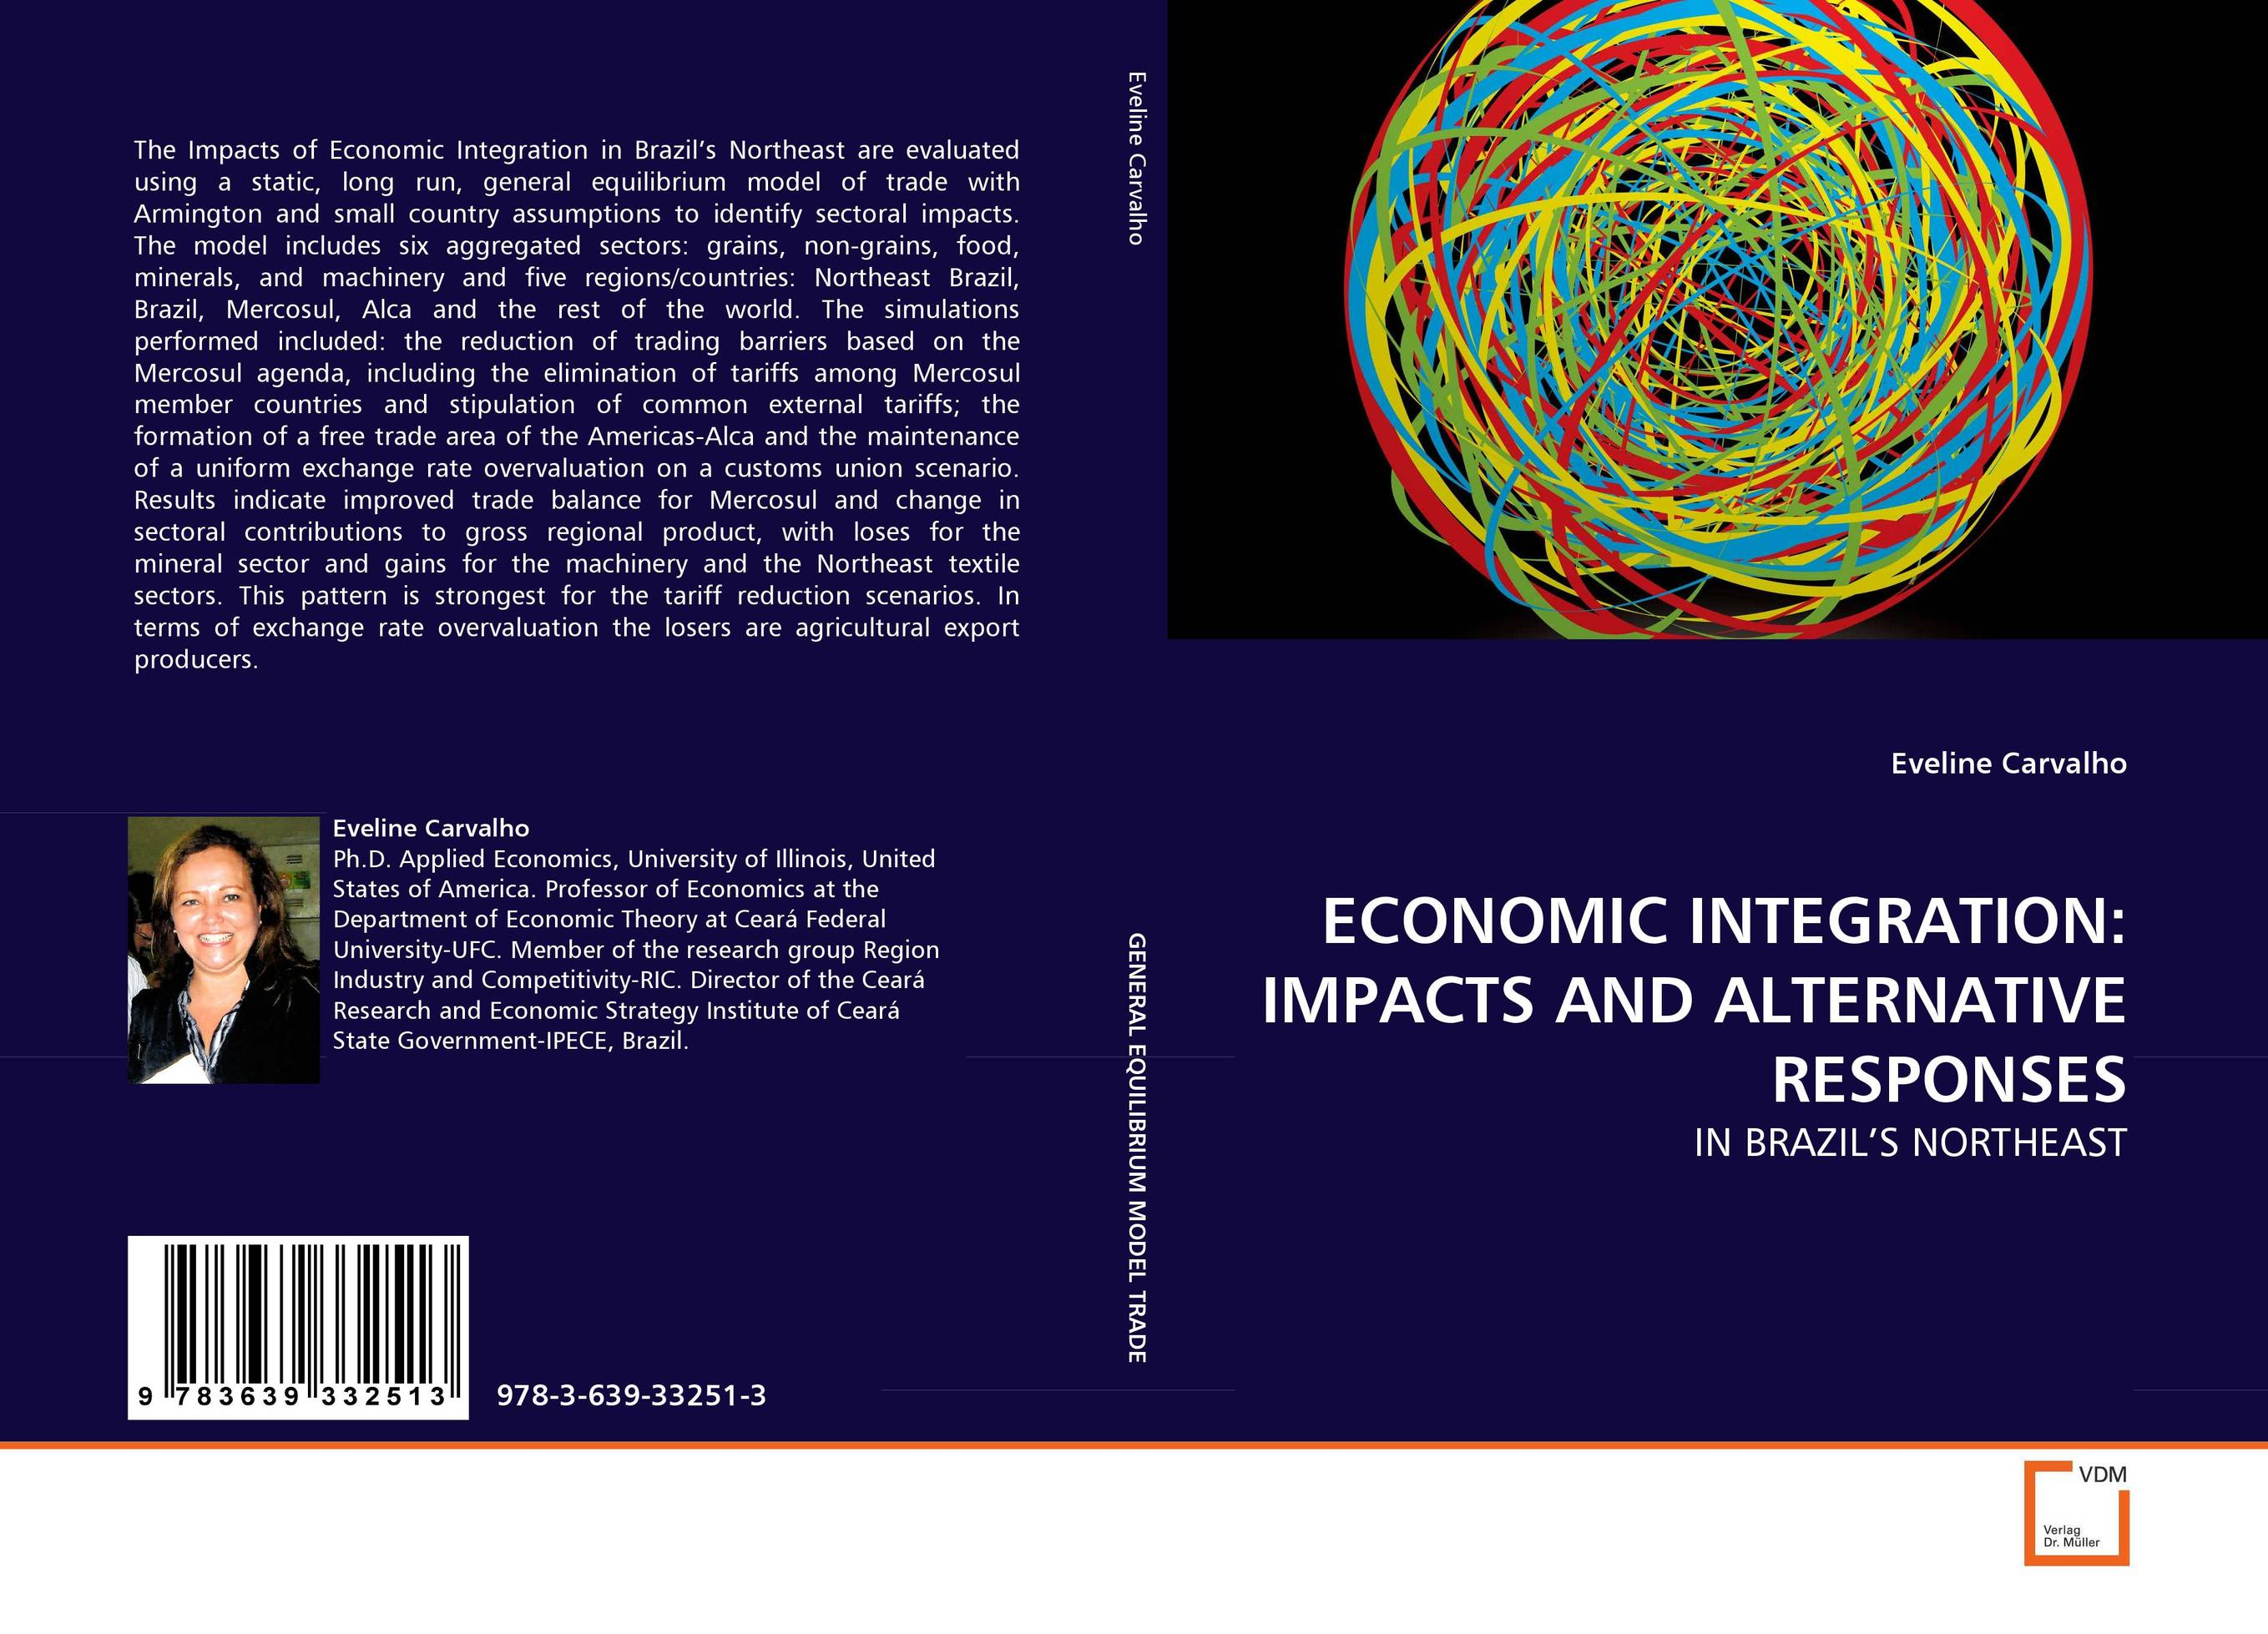 ECONOMIC INTEGRATION: IMPACTS AND ALTERNATIVE RESPONSES creating alternative history the online poetic responses to 9 11